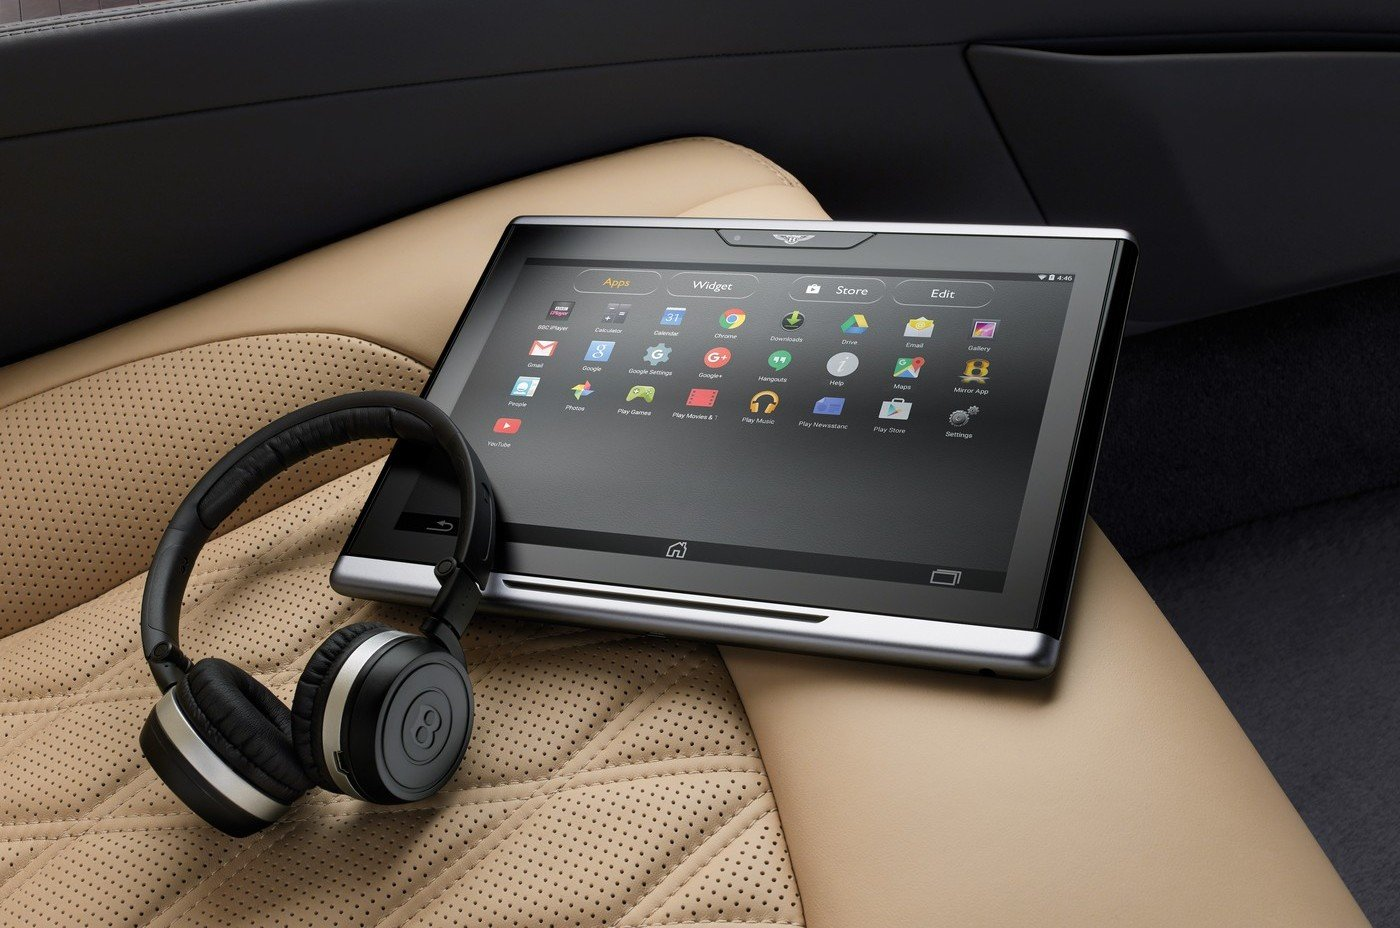 Because Sir wants 4K Netflix in the backseat – Bentley has announced the world's first super-fast and secure in-car Wi-Fi system